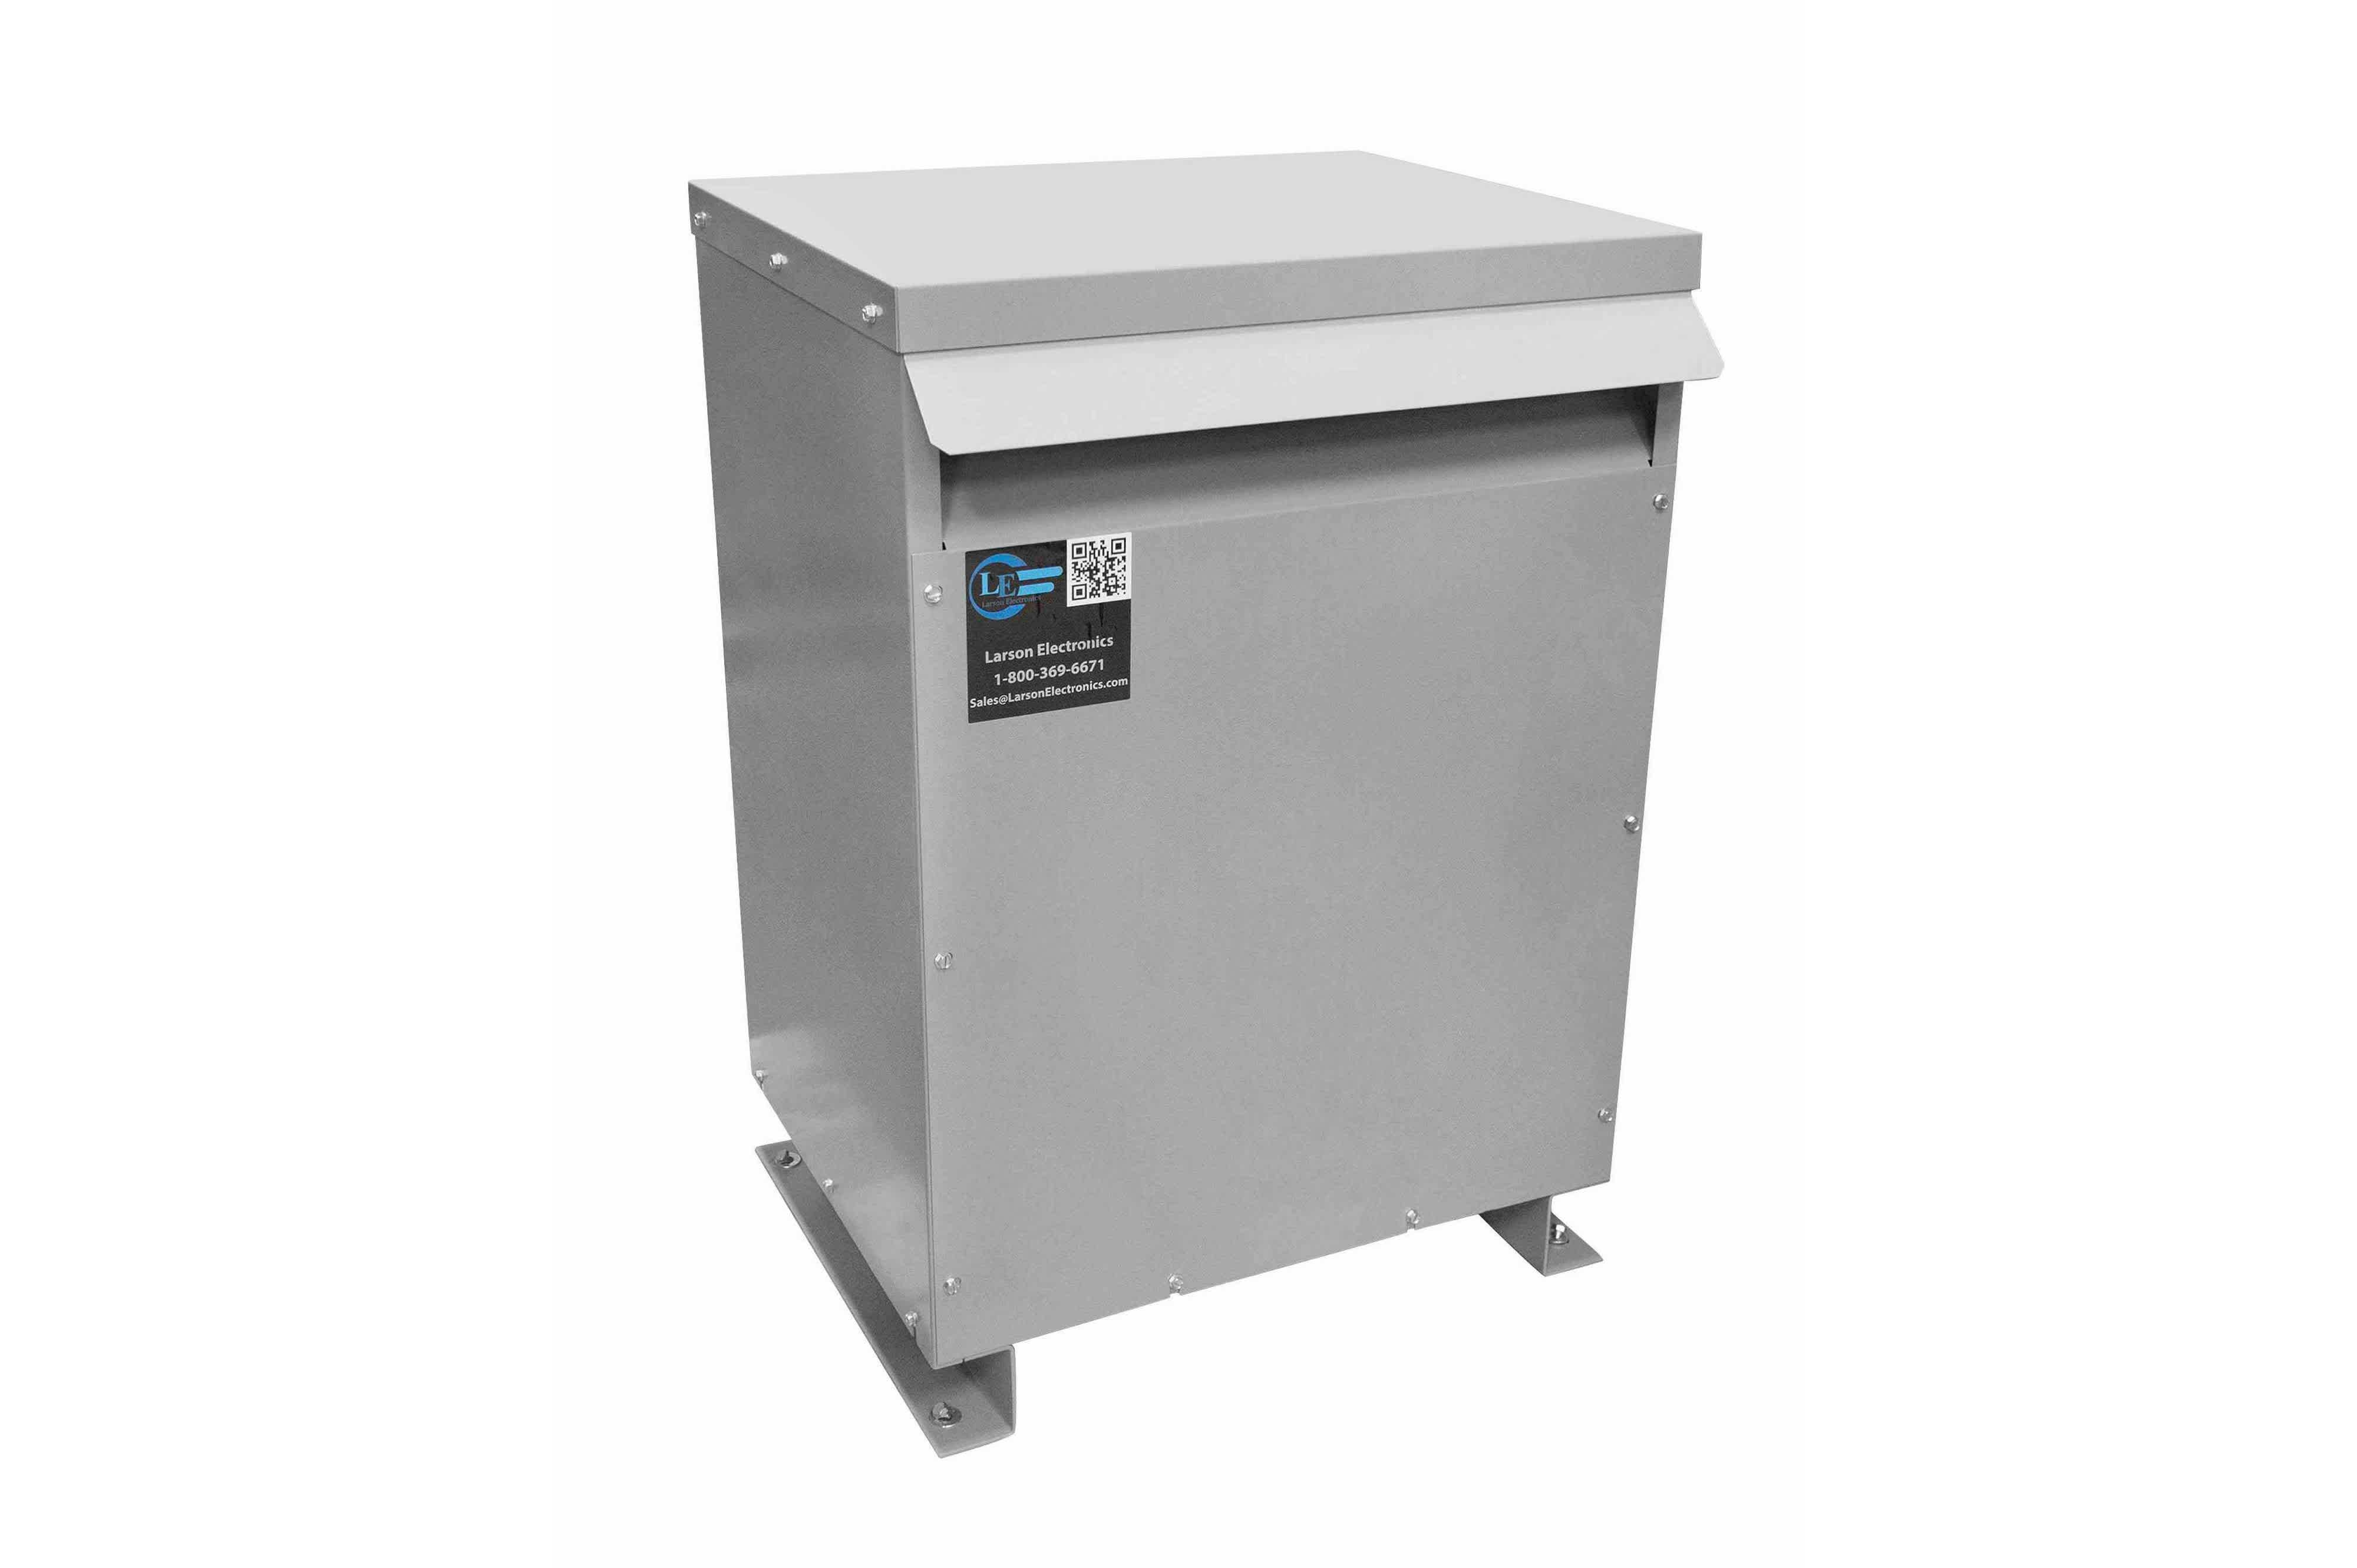 15 kVA 3PH DOE Transformer, 240V Delta Primary, 480Y/277 Wye-N Secondary, N3R, Ventilated, 60 Hz